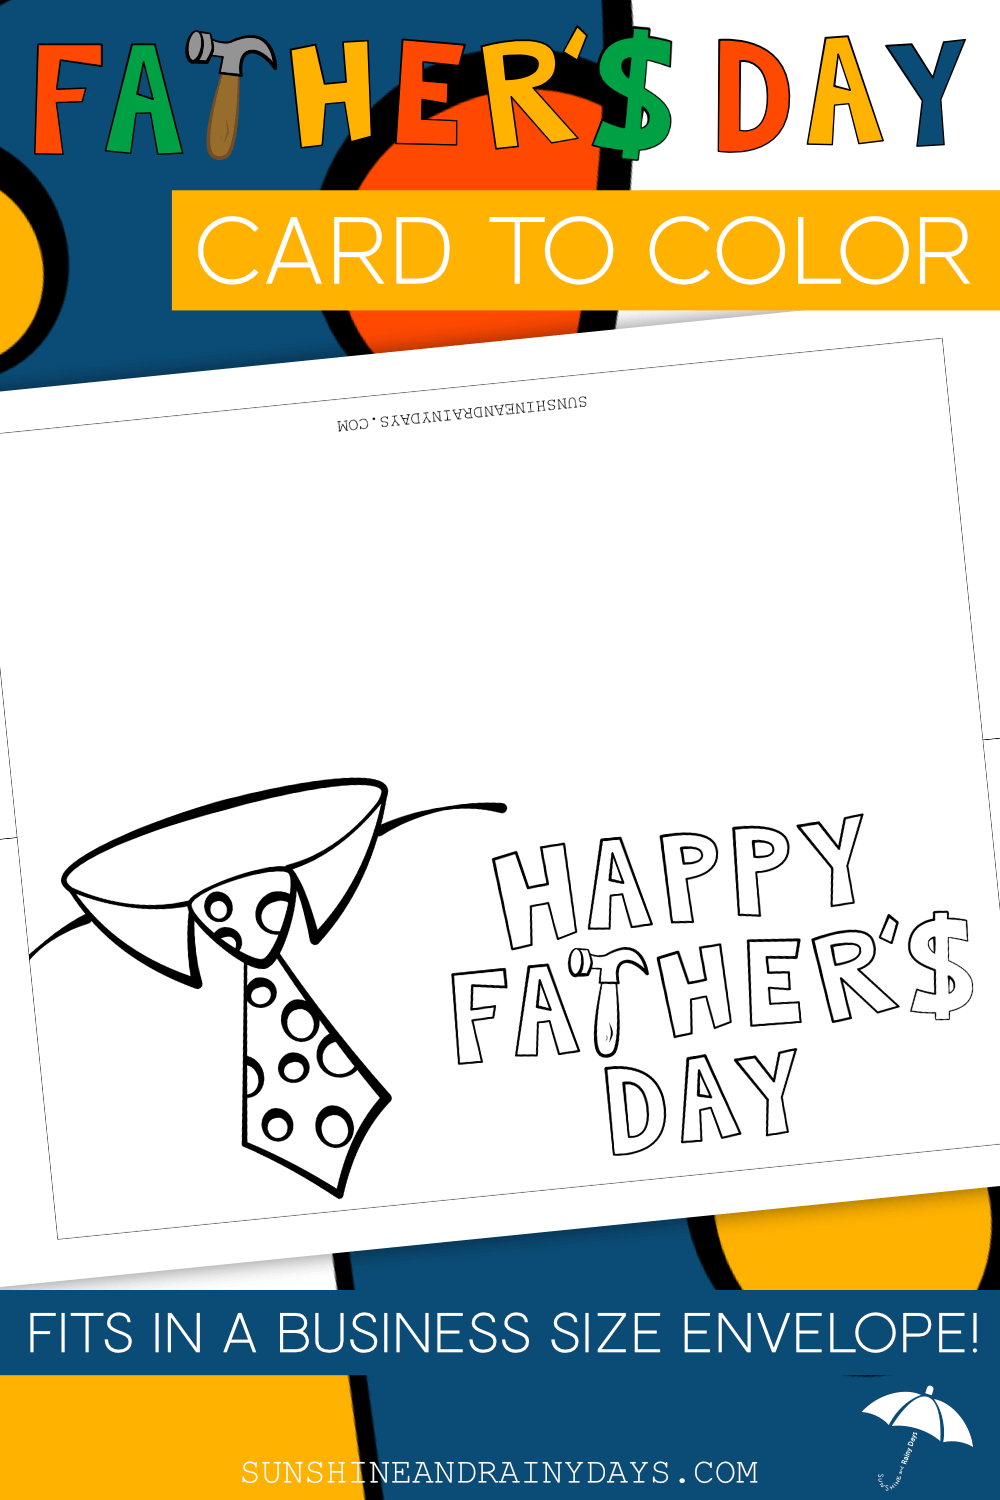 Father's Day Card To Color (PDF)